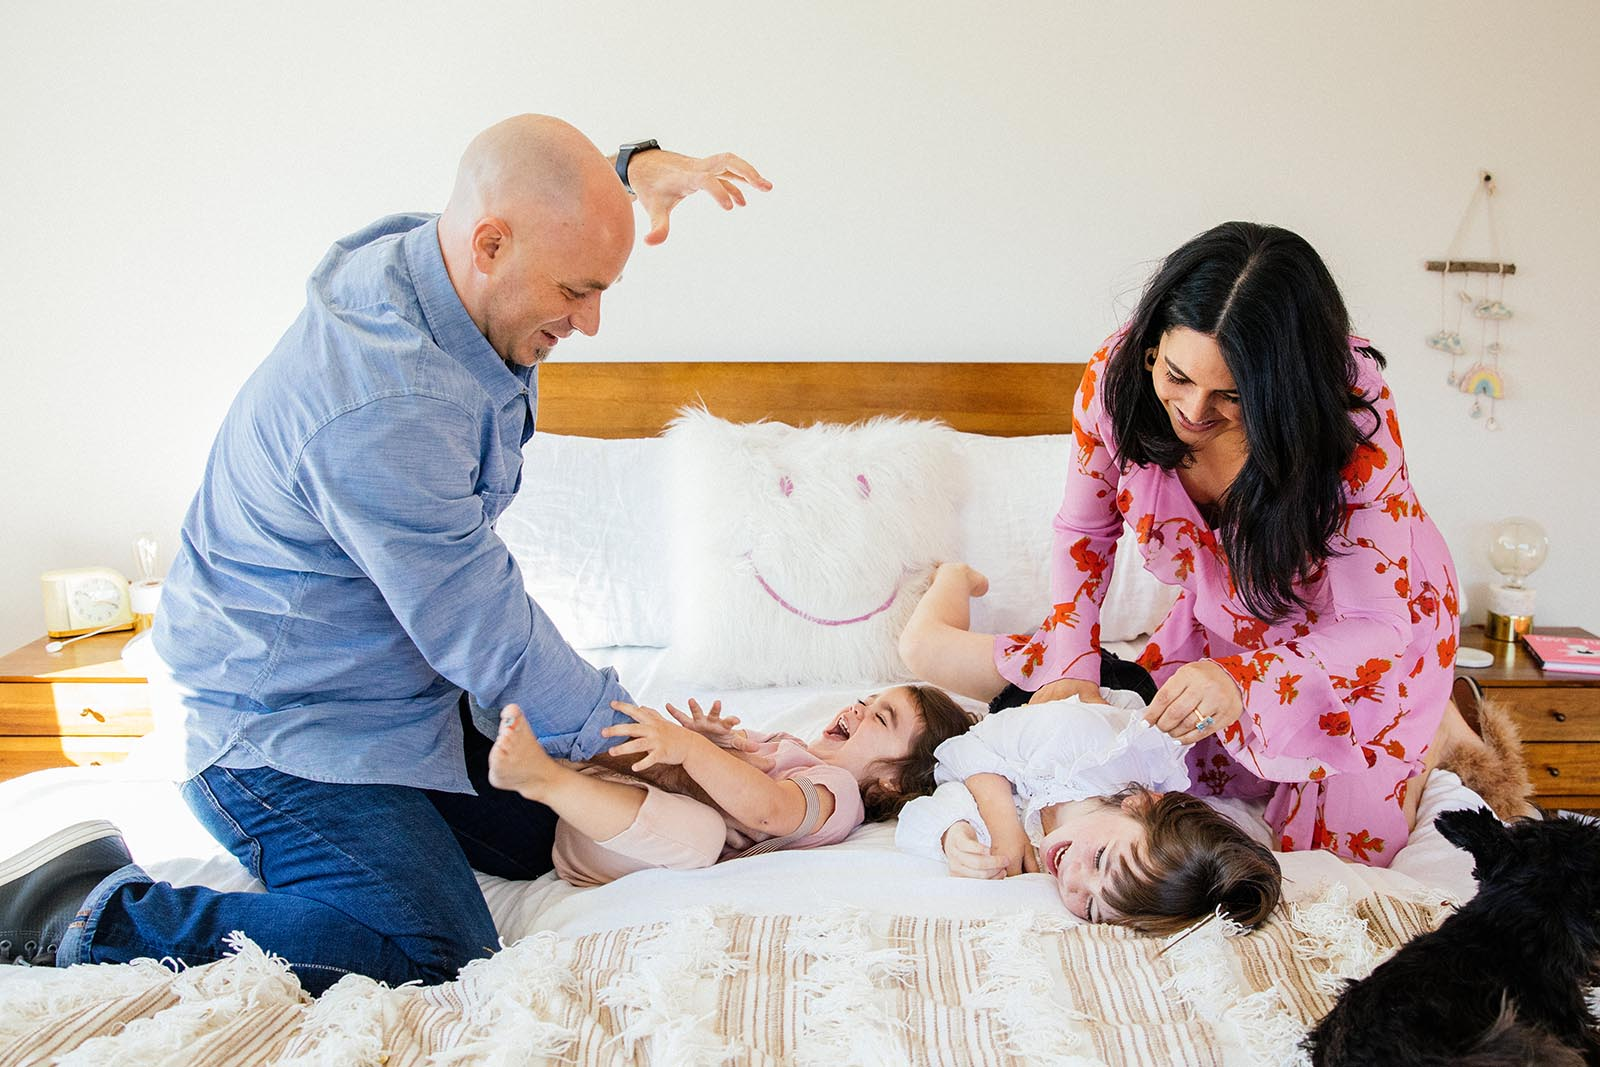 A family plays on a bed